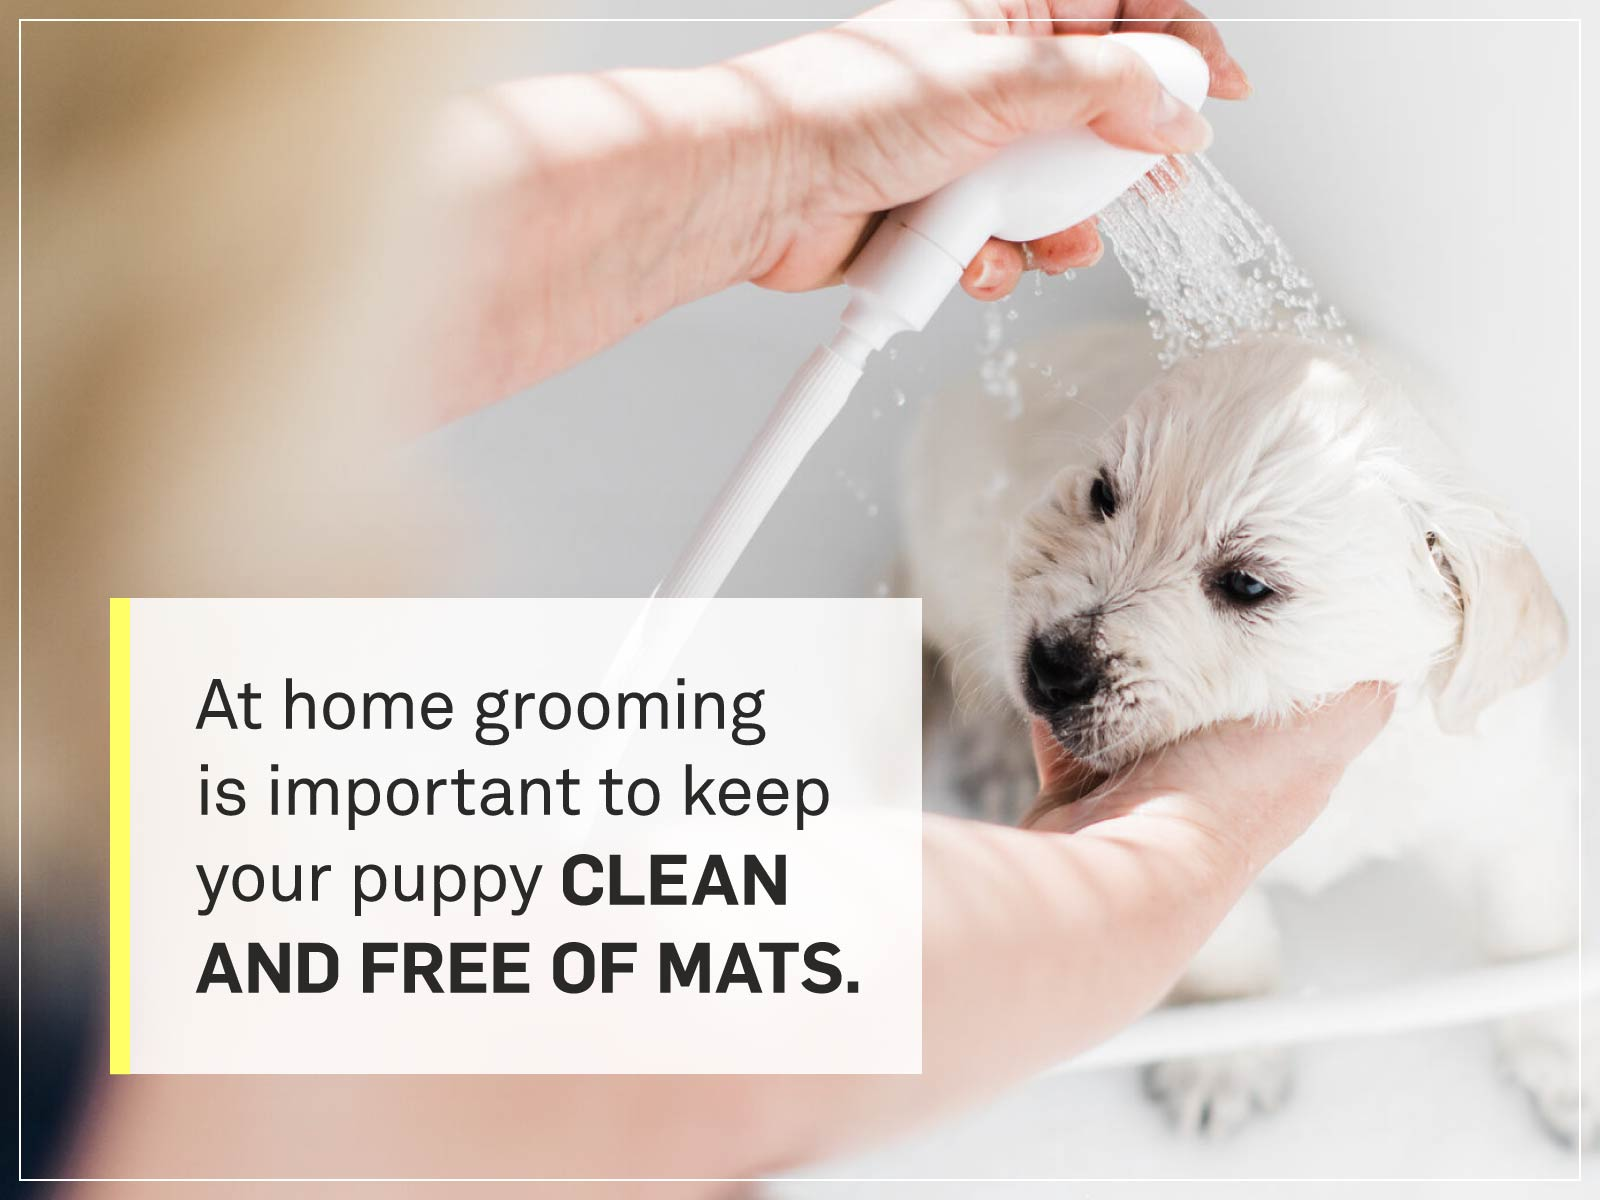 new puppy checklist 5-grooming